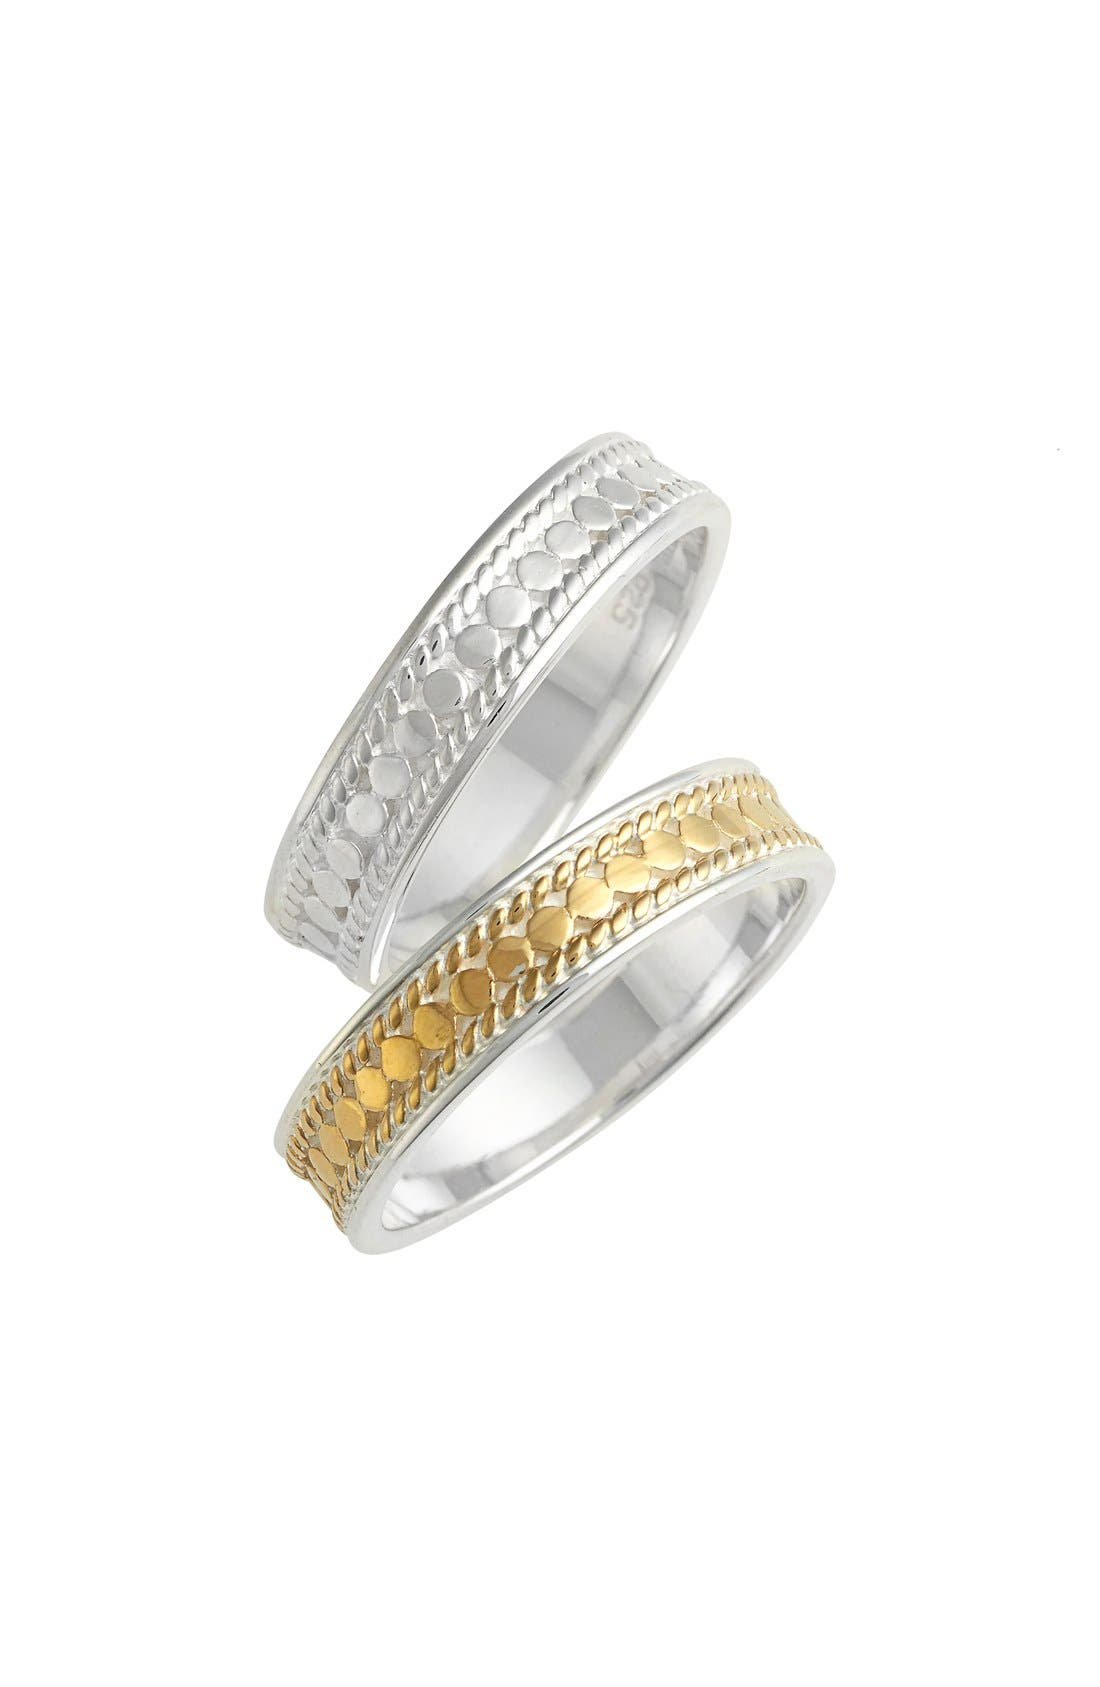 Alternate Image 1 Selected - Anna Beck Two-Tone Stacking Rings (Set of 2)